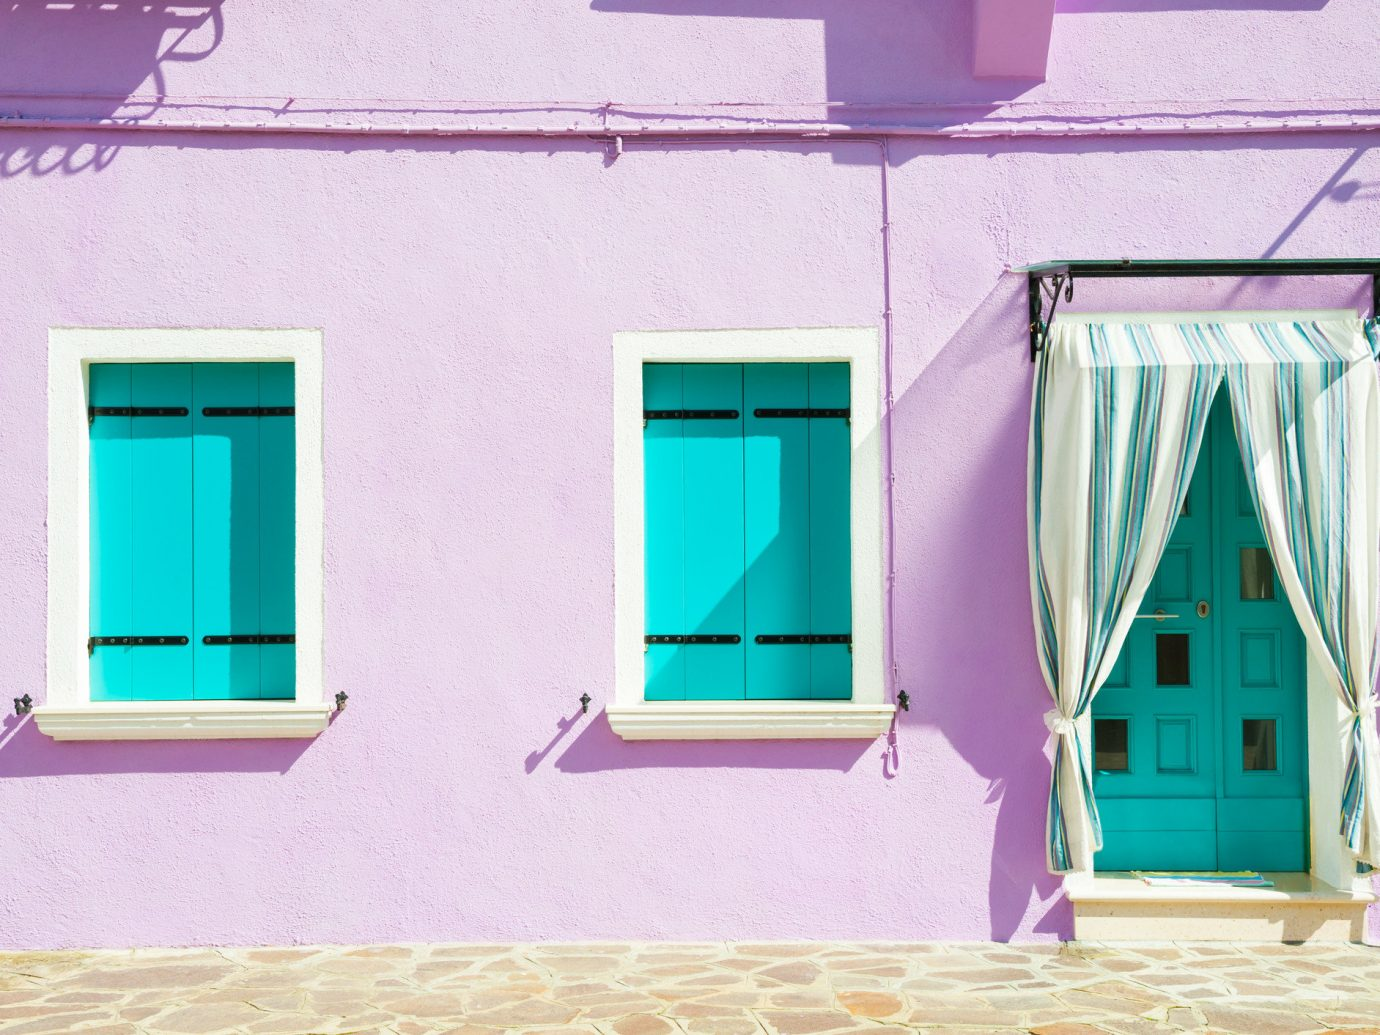 Offbeat building color blue pink room wall house interior design home window facade door Design furniture painted